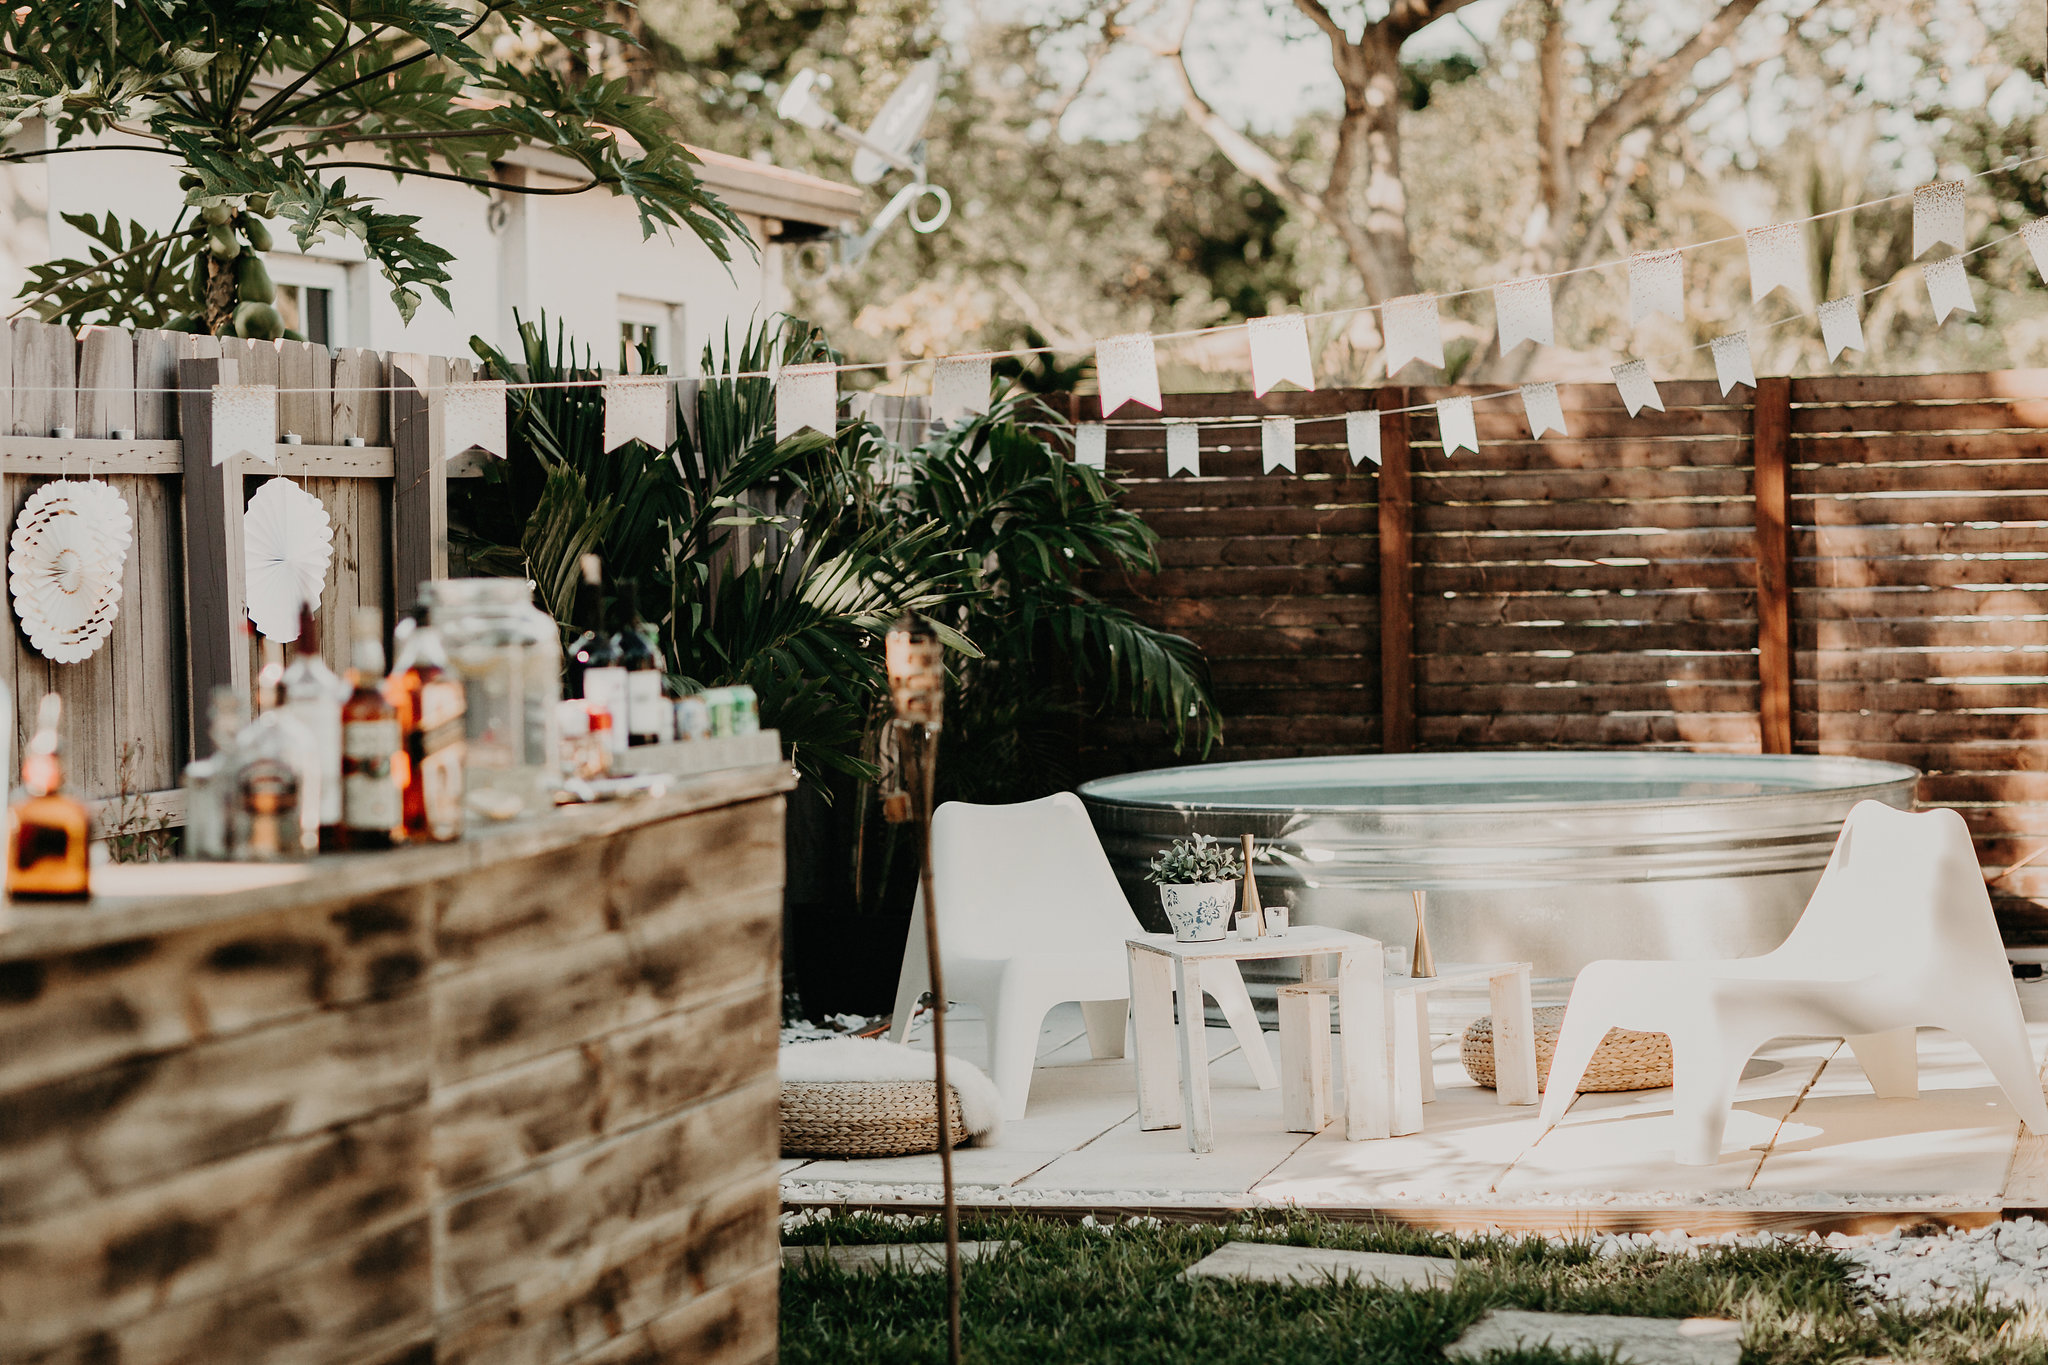 4-in-1-Creative-Party-at-The-Creatives-Loft-Baby-Shower-Party-Pinterest-Wedding-and-Event-Planner-Miami-42.jpg